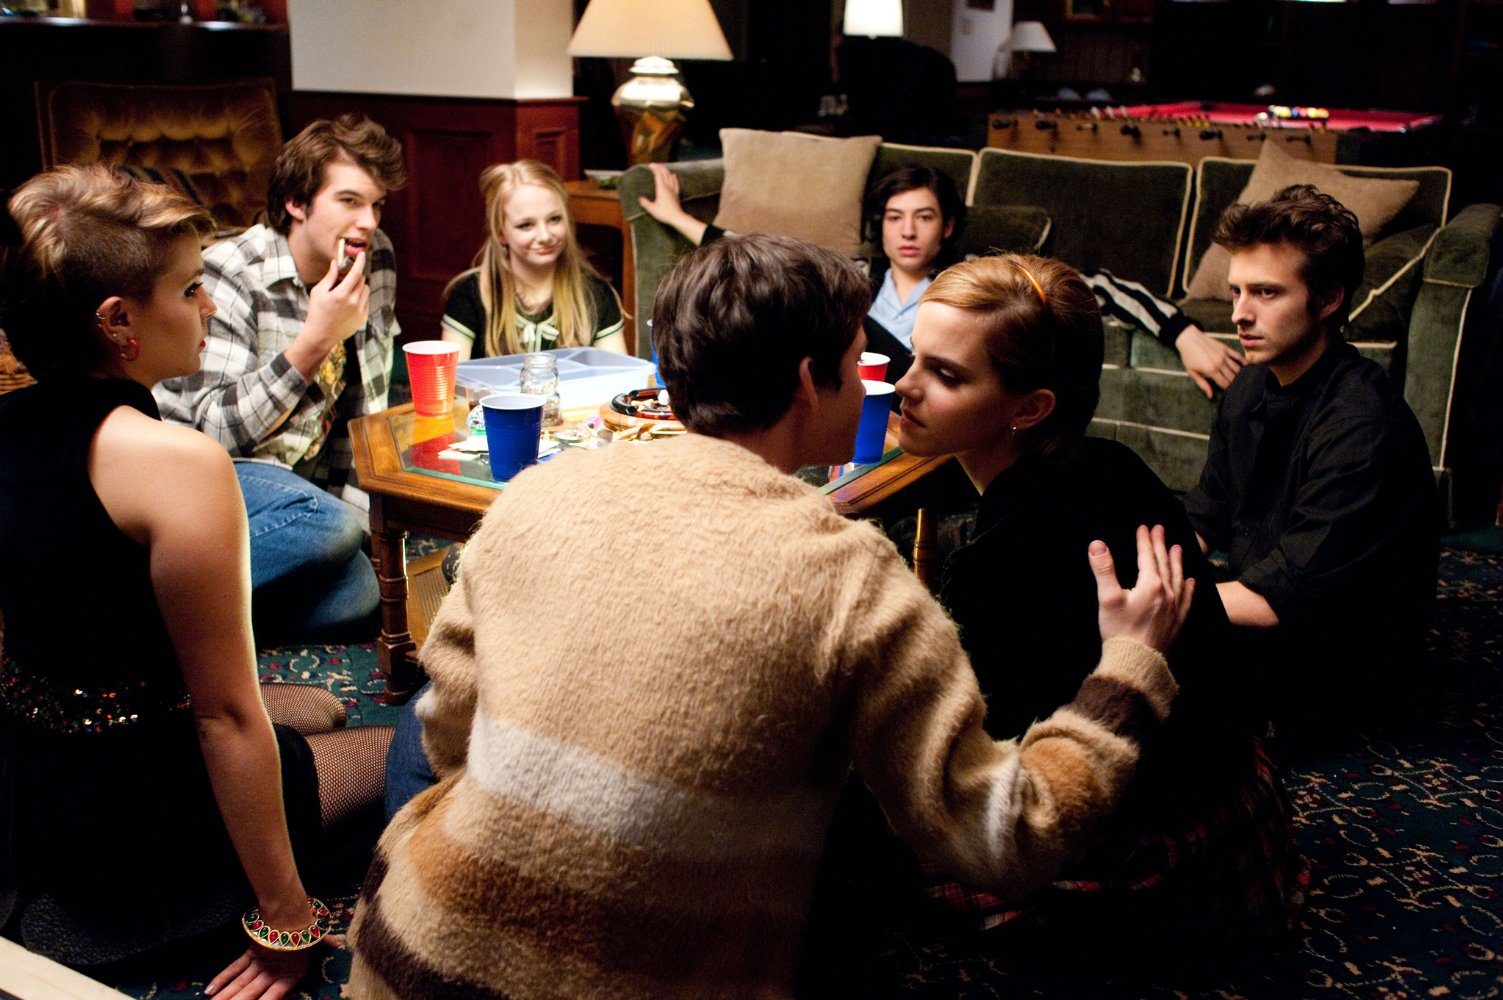 perks of being a wallflower full movie 123movies